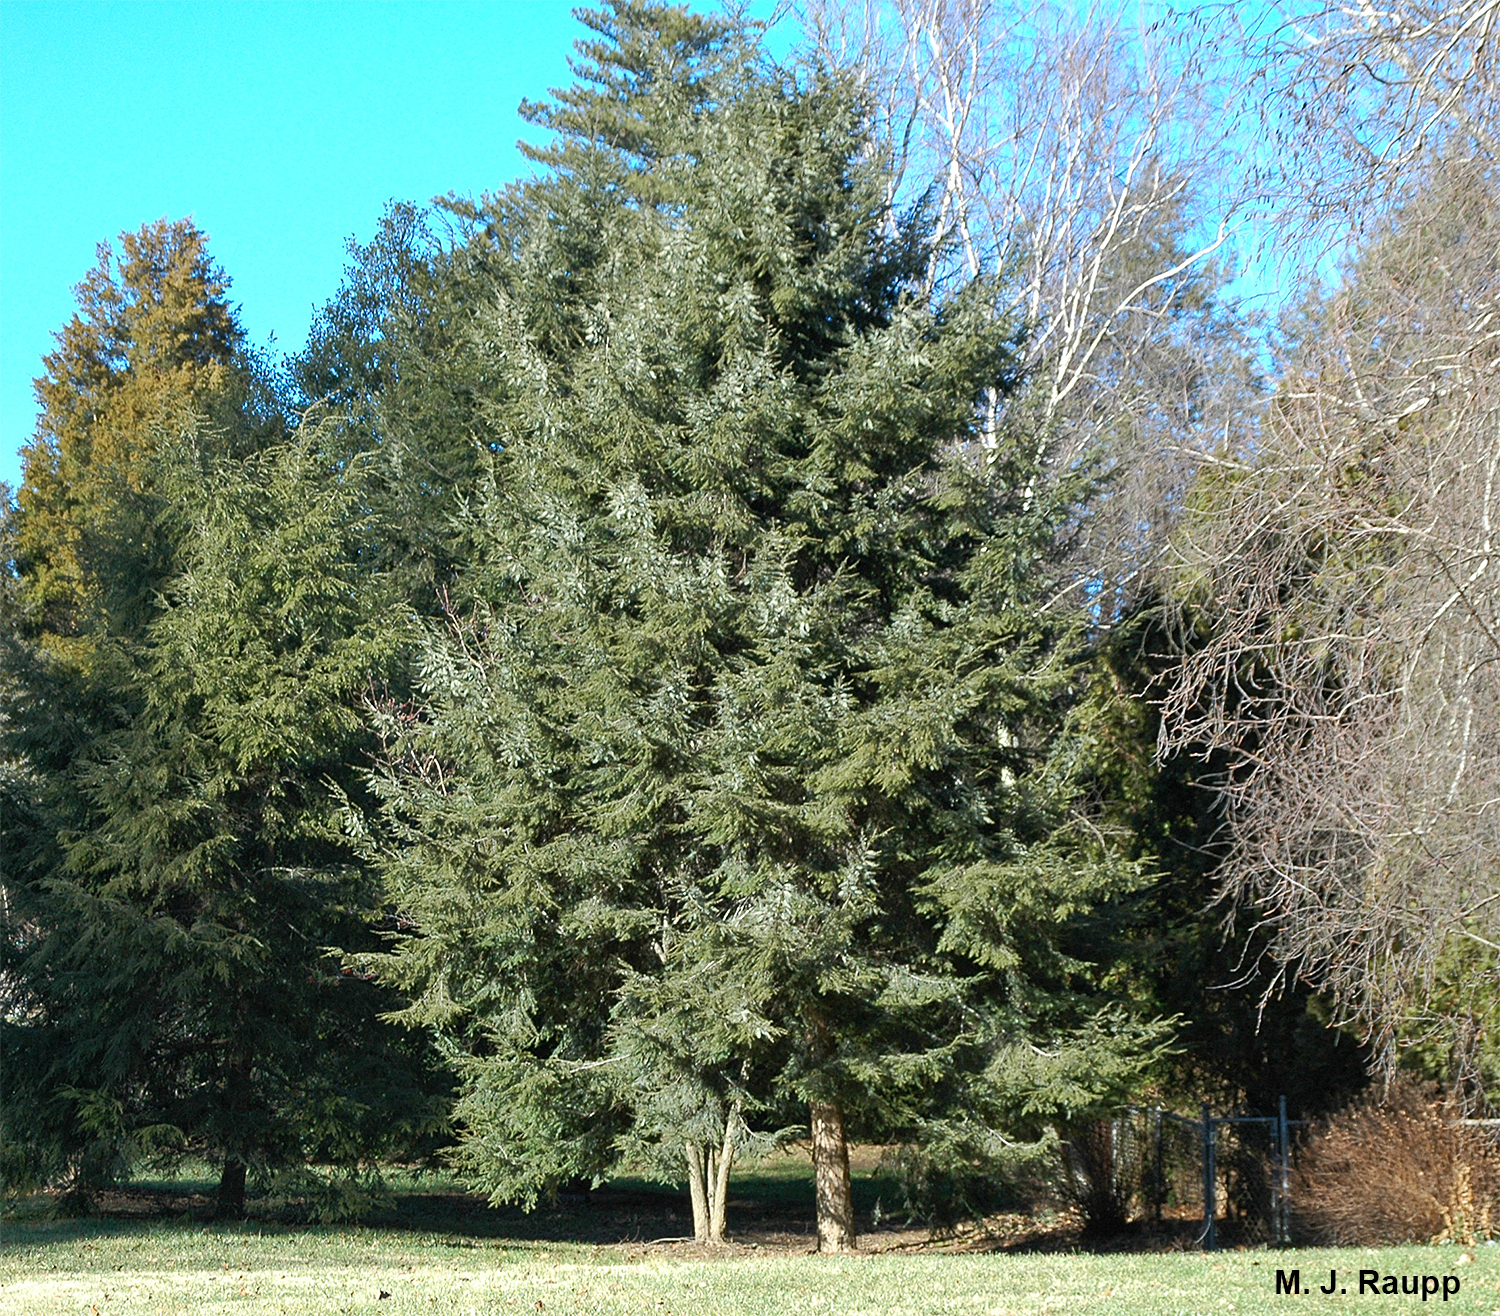 Eastern hemlocks are beautiful native trees well suited for landscapes.